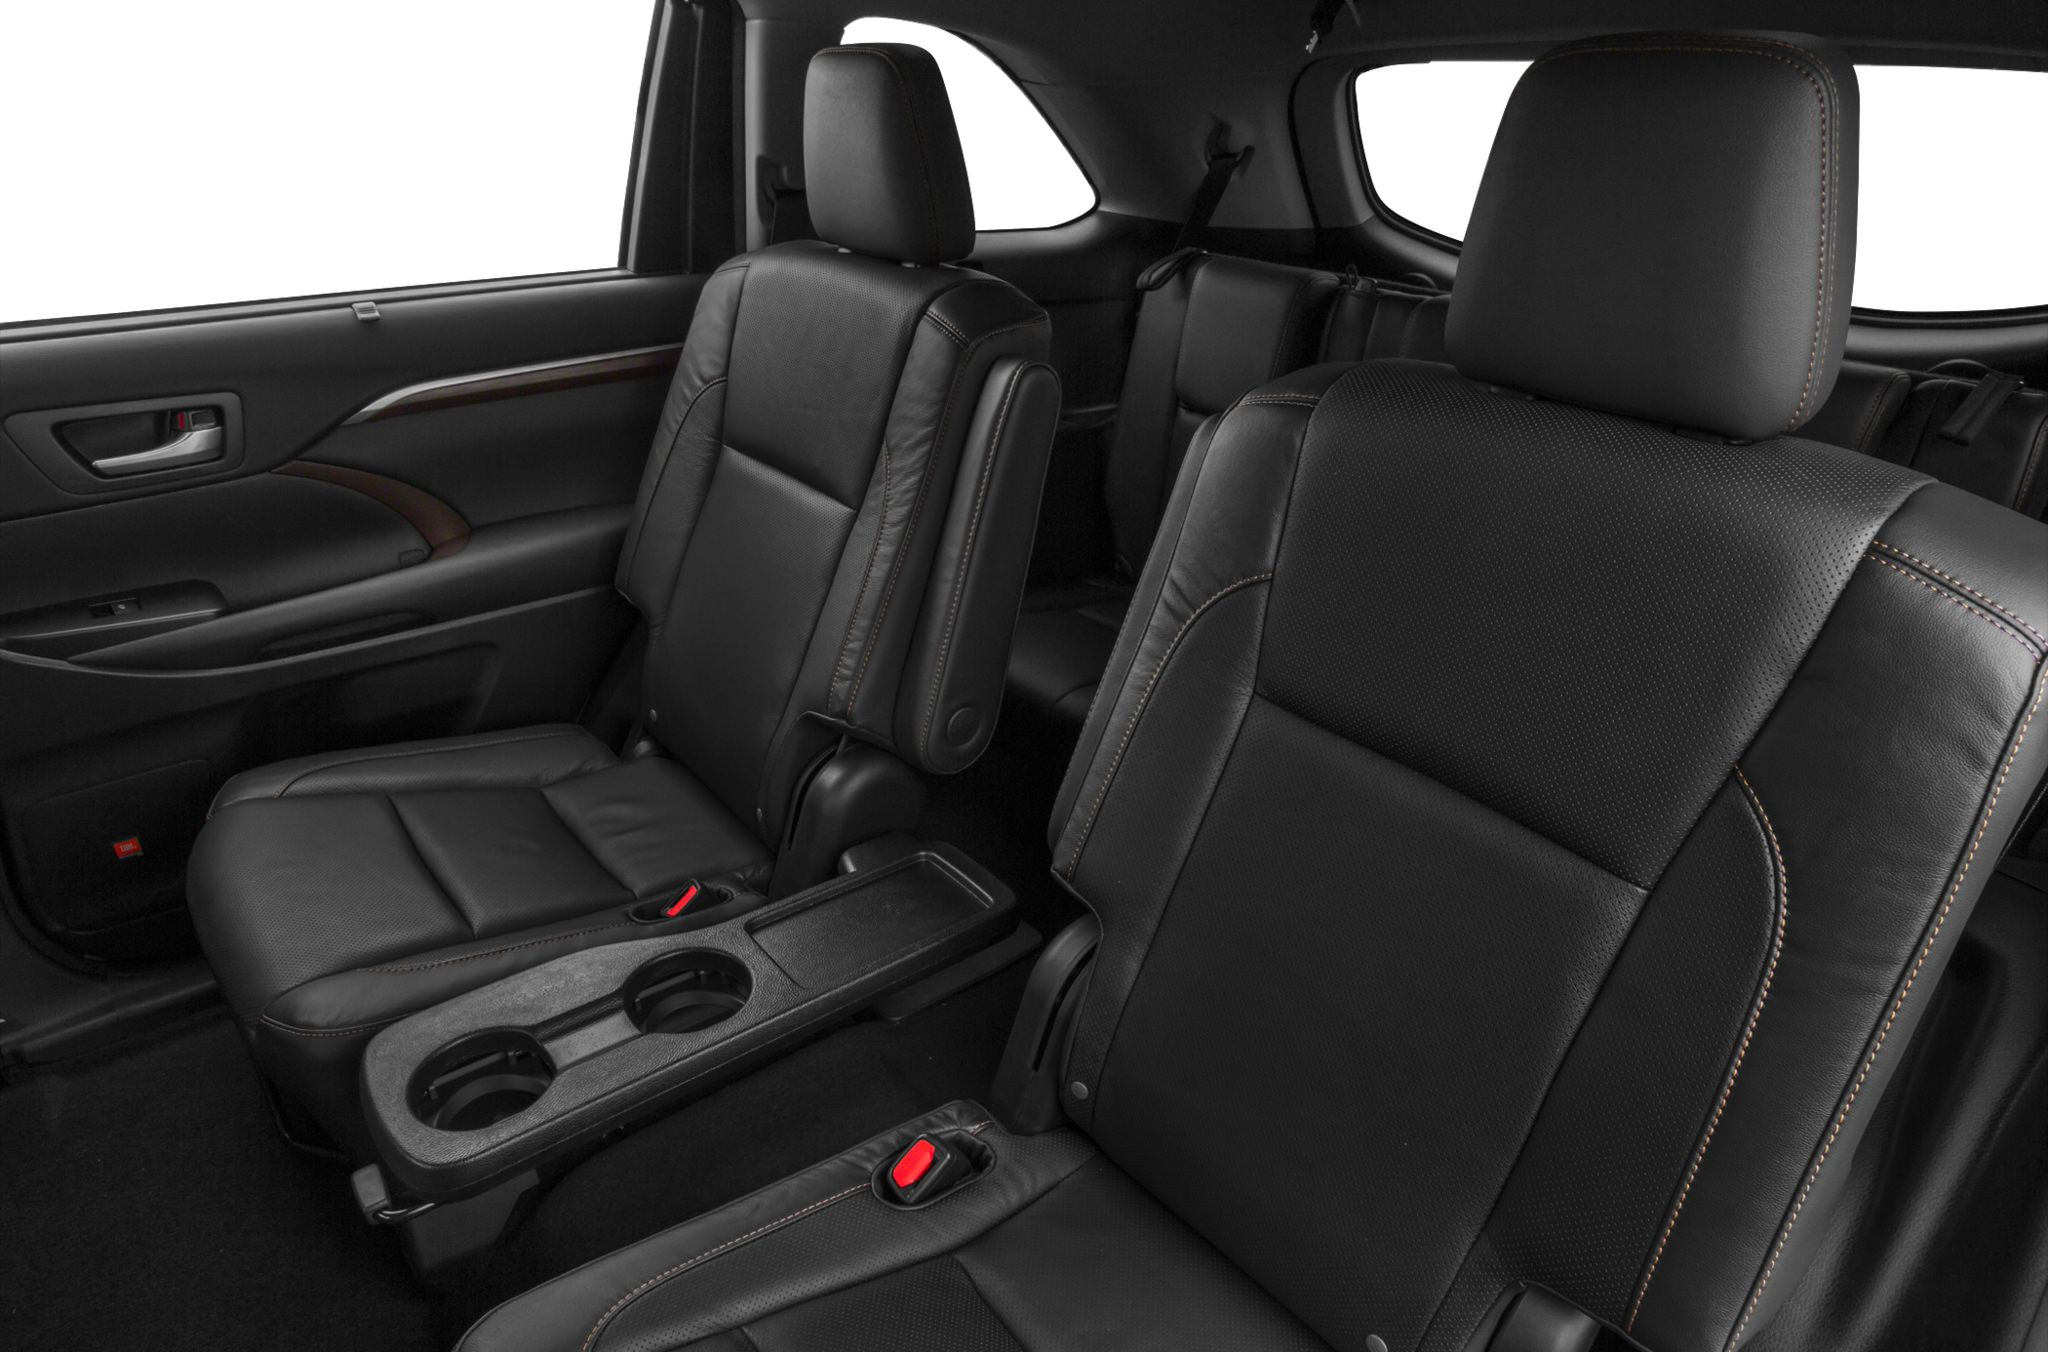 Toyota Highlander Captains Chairs